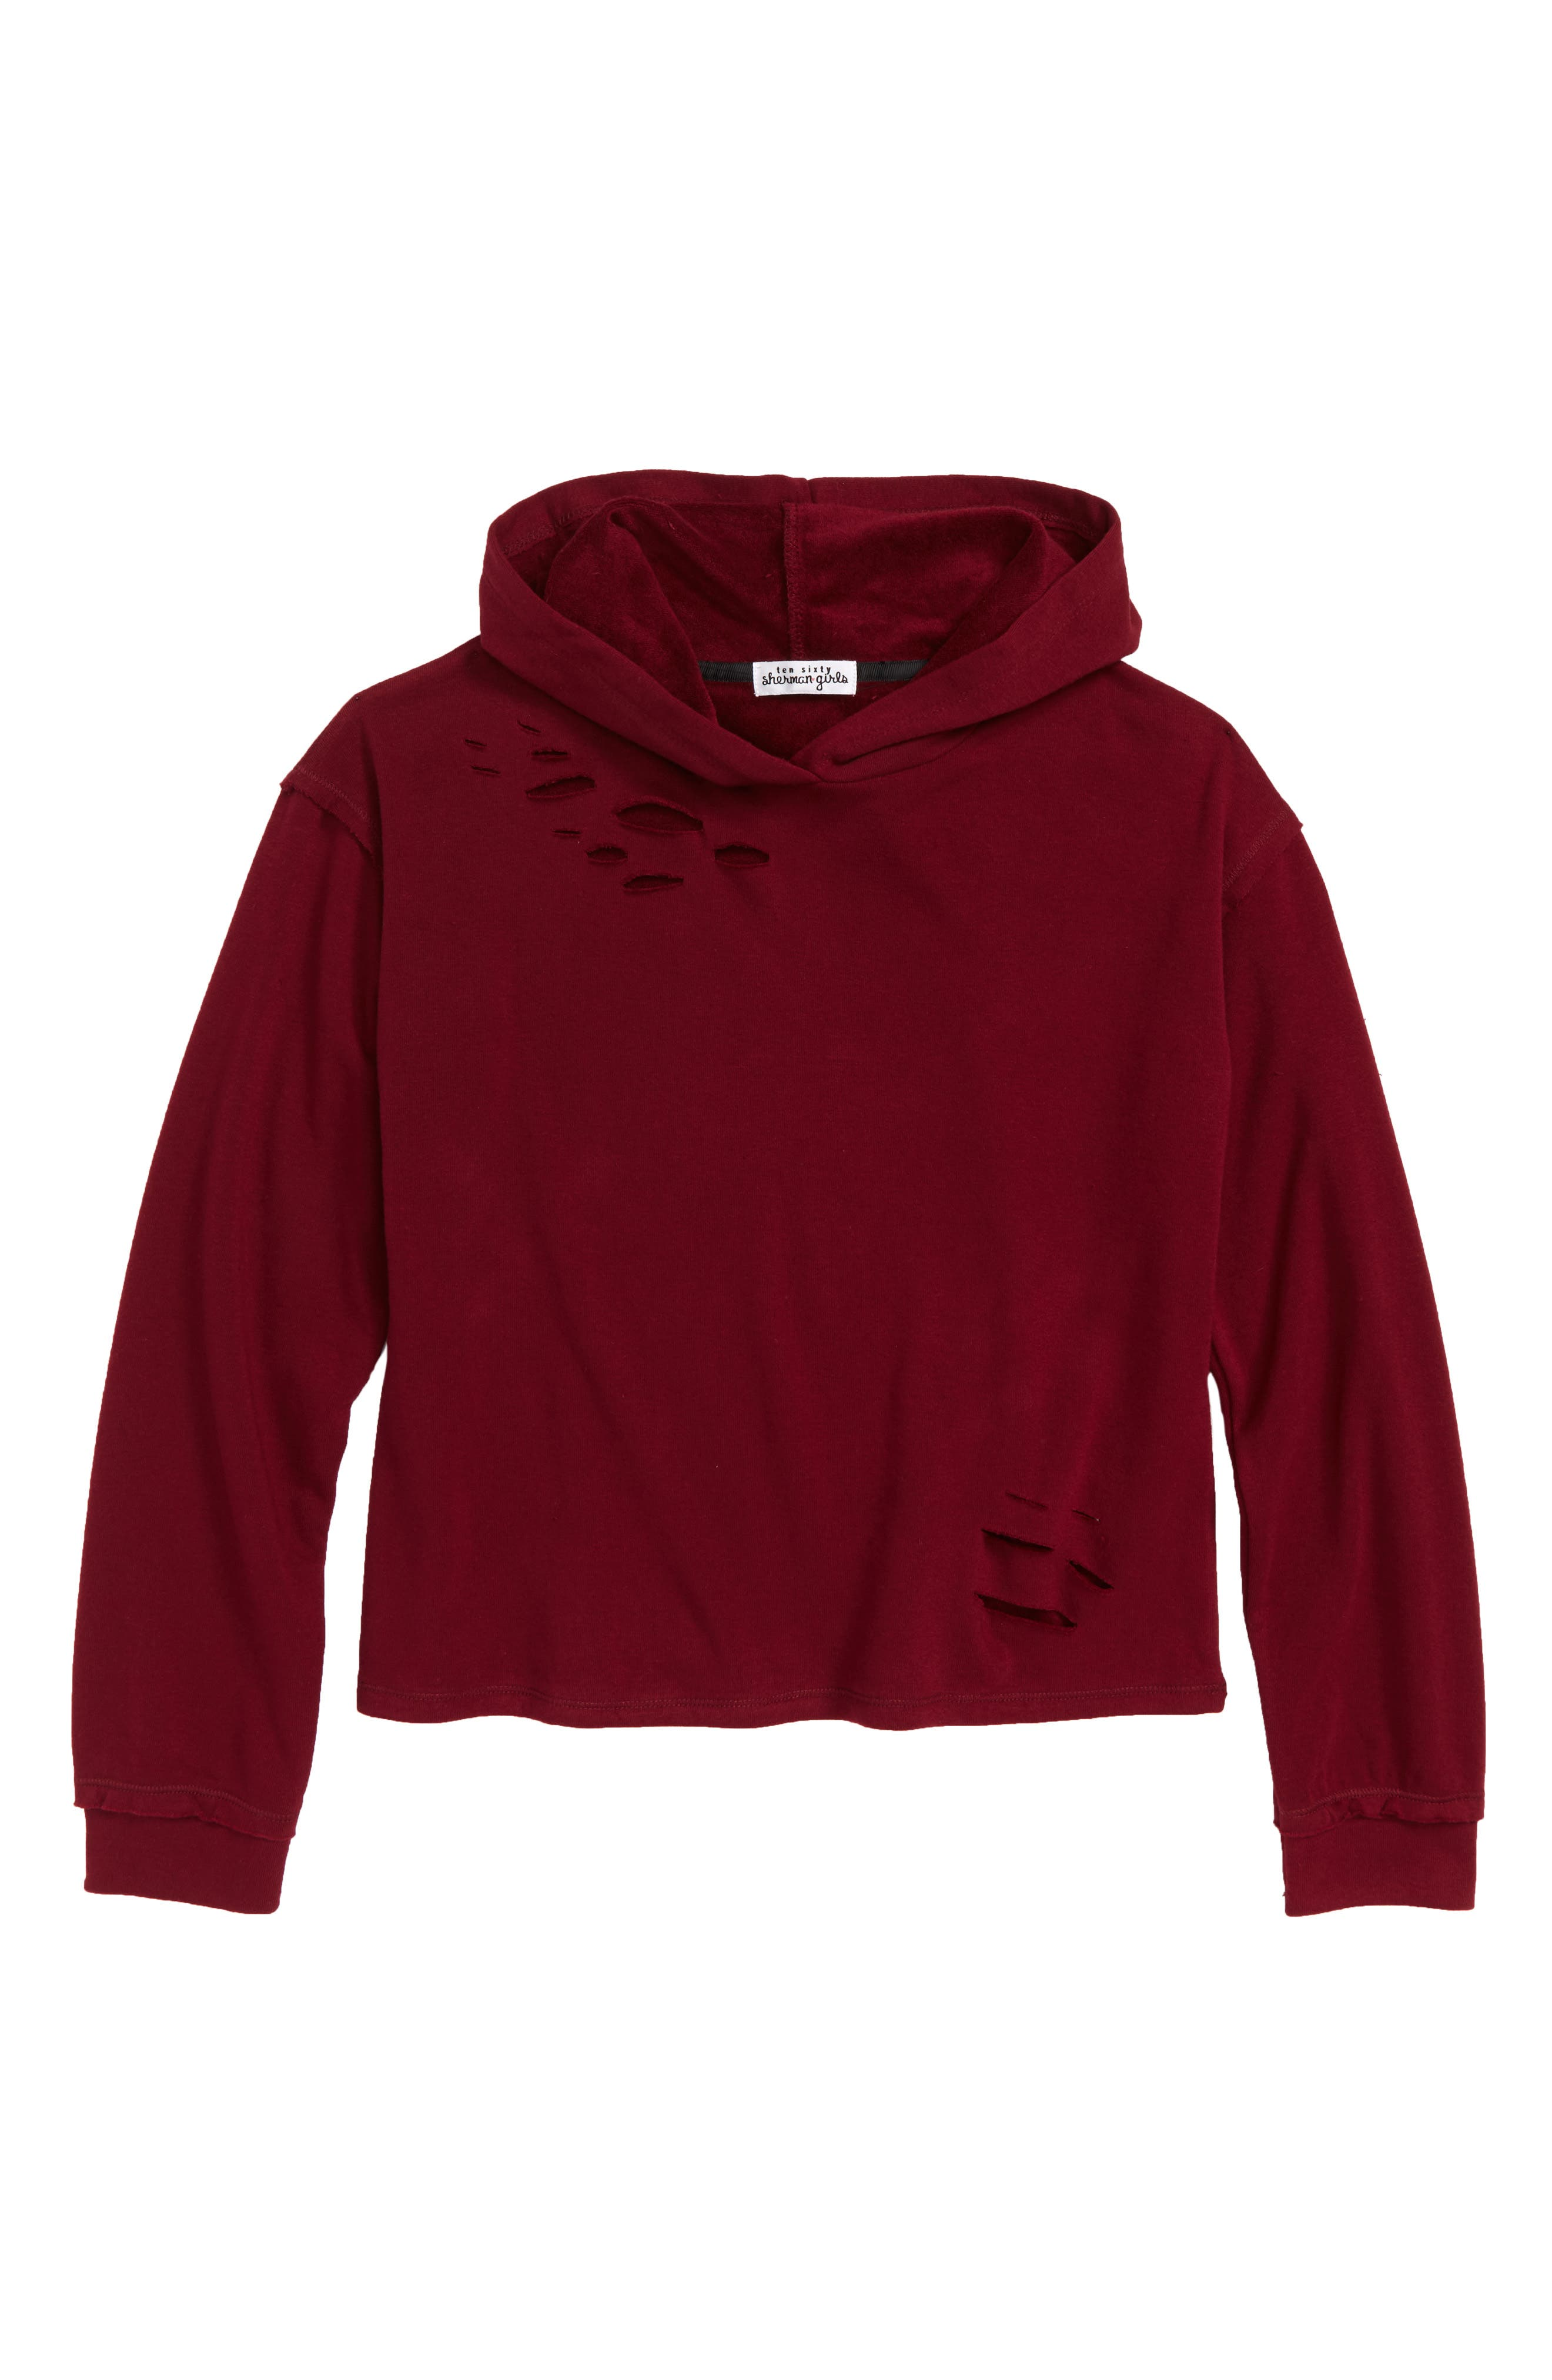 Destructed Hoodie,                         Main,                         color, Burgundy